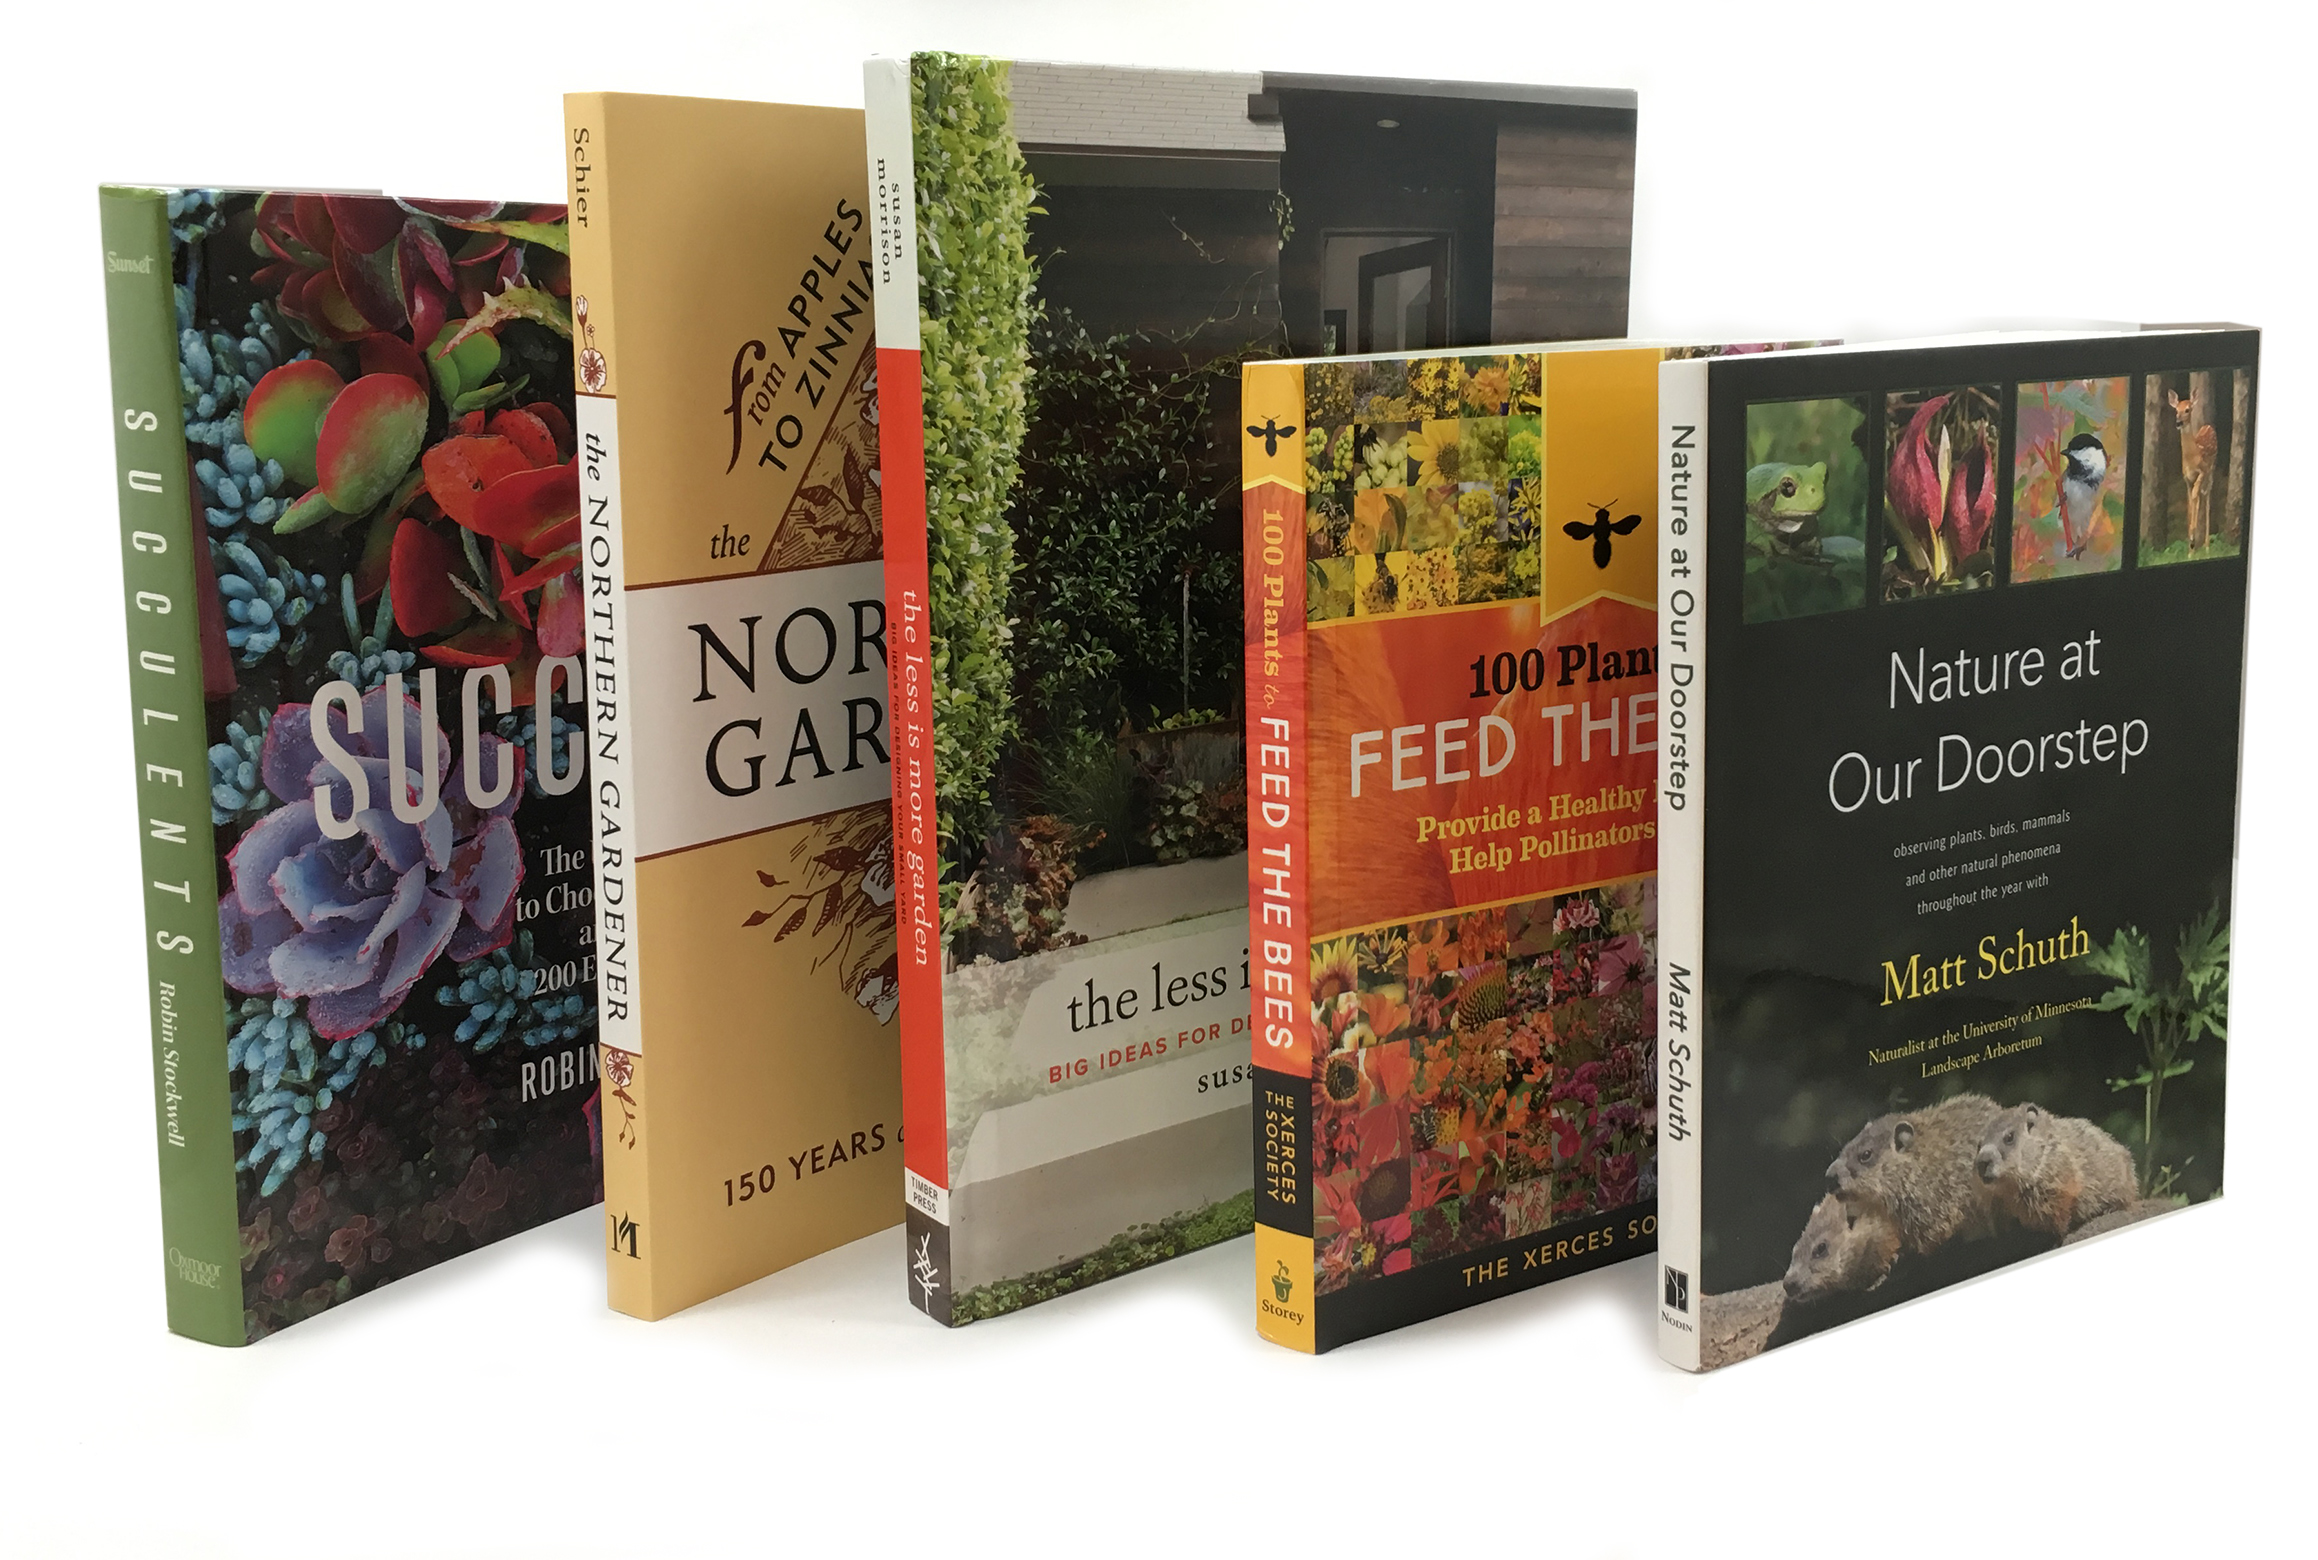 REVIEWS: Five books to get your gardening juices flowing ...